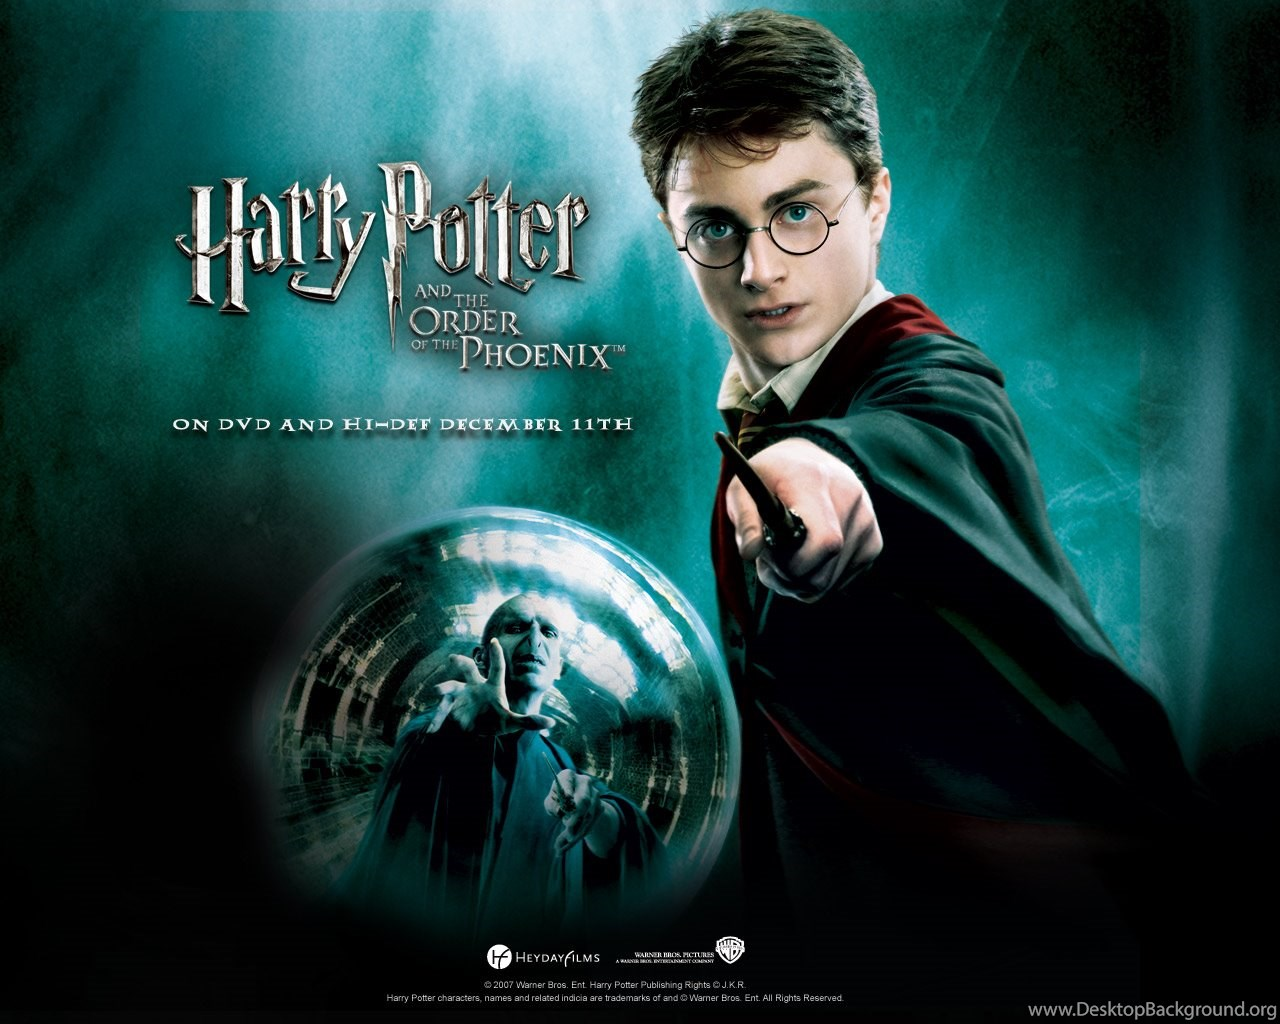 Cool Wallpaper Harry Potter Ipod Touch - 1039259_download-the-harry-potter-1-wallpaper-harry-potter-1-iphone_1280x1024_h  Picture_94393.jpg